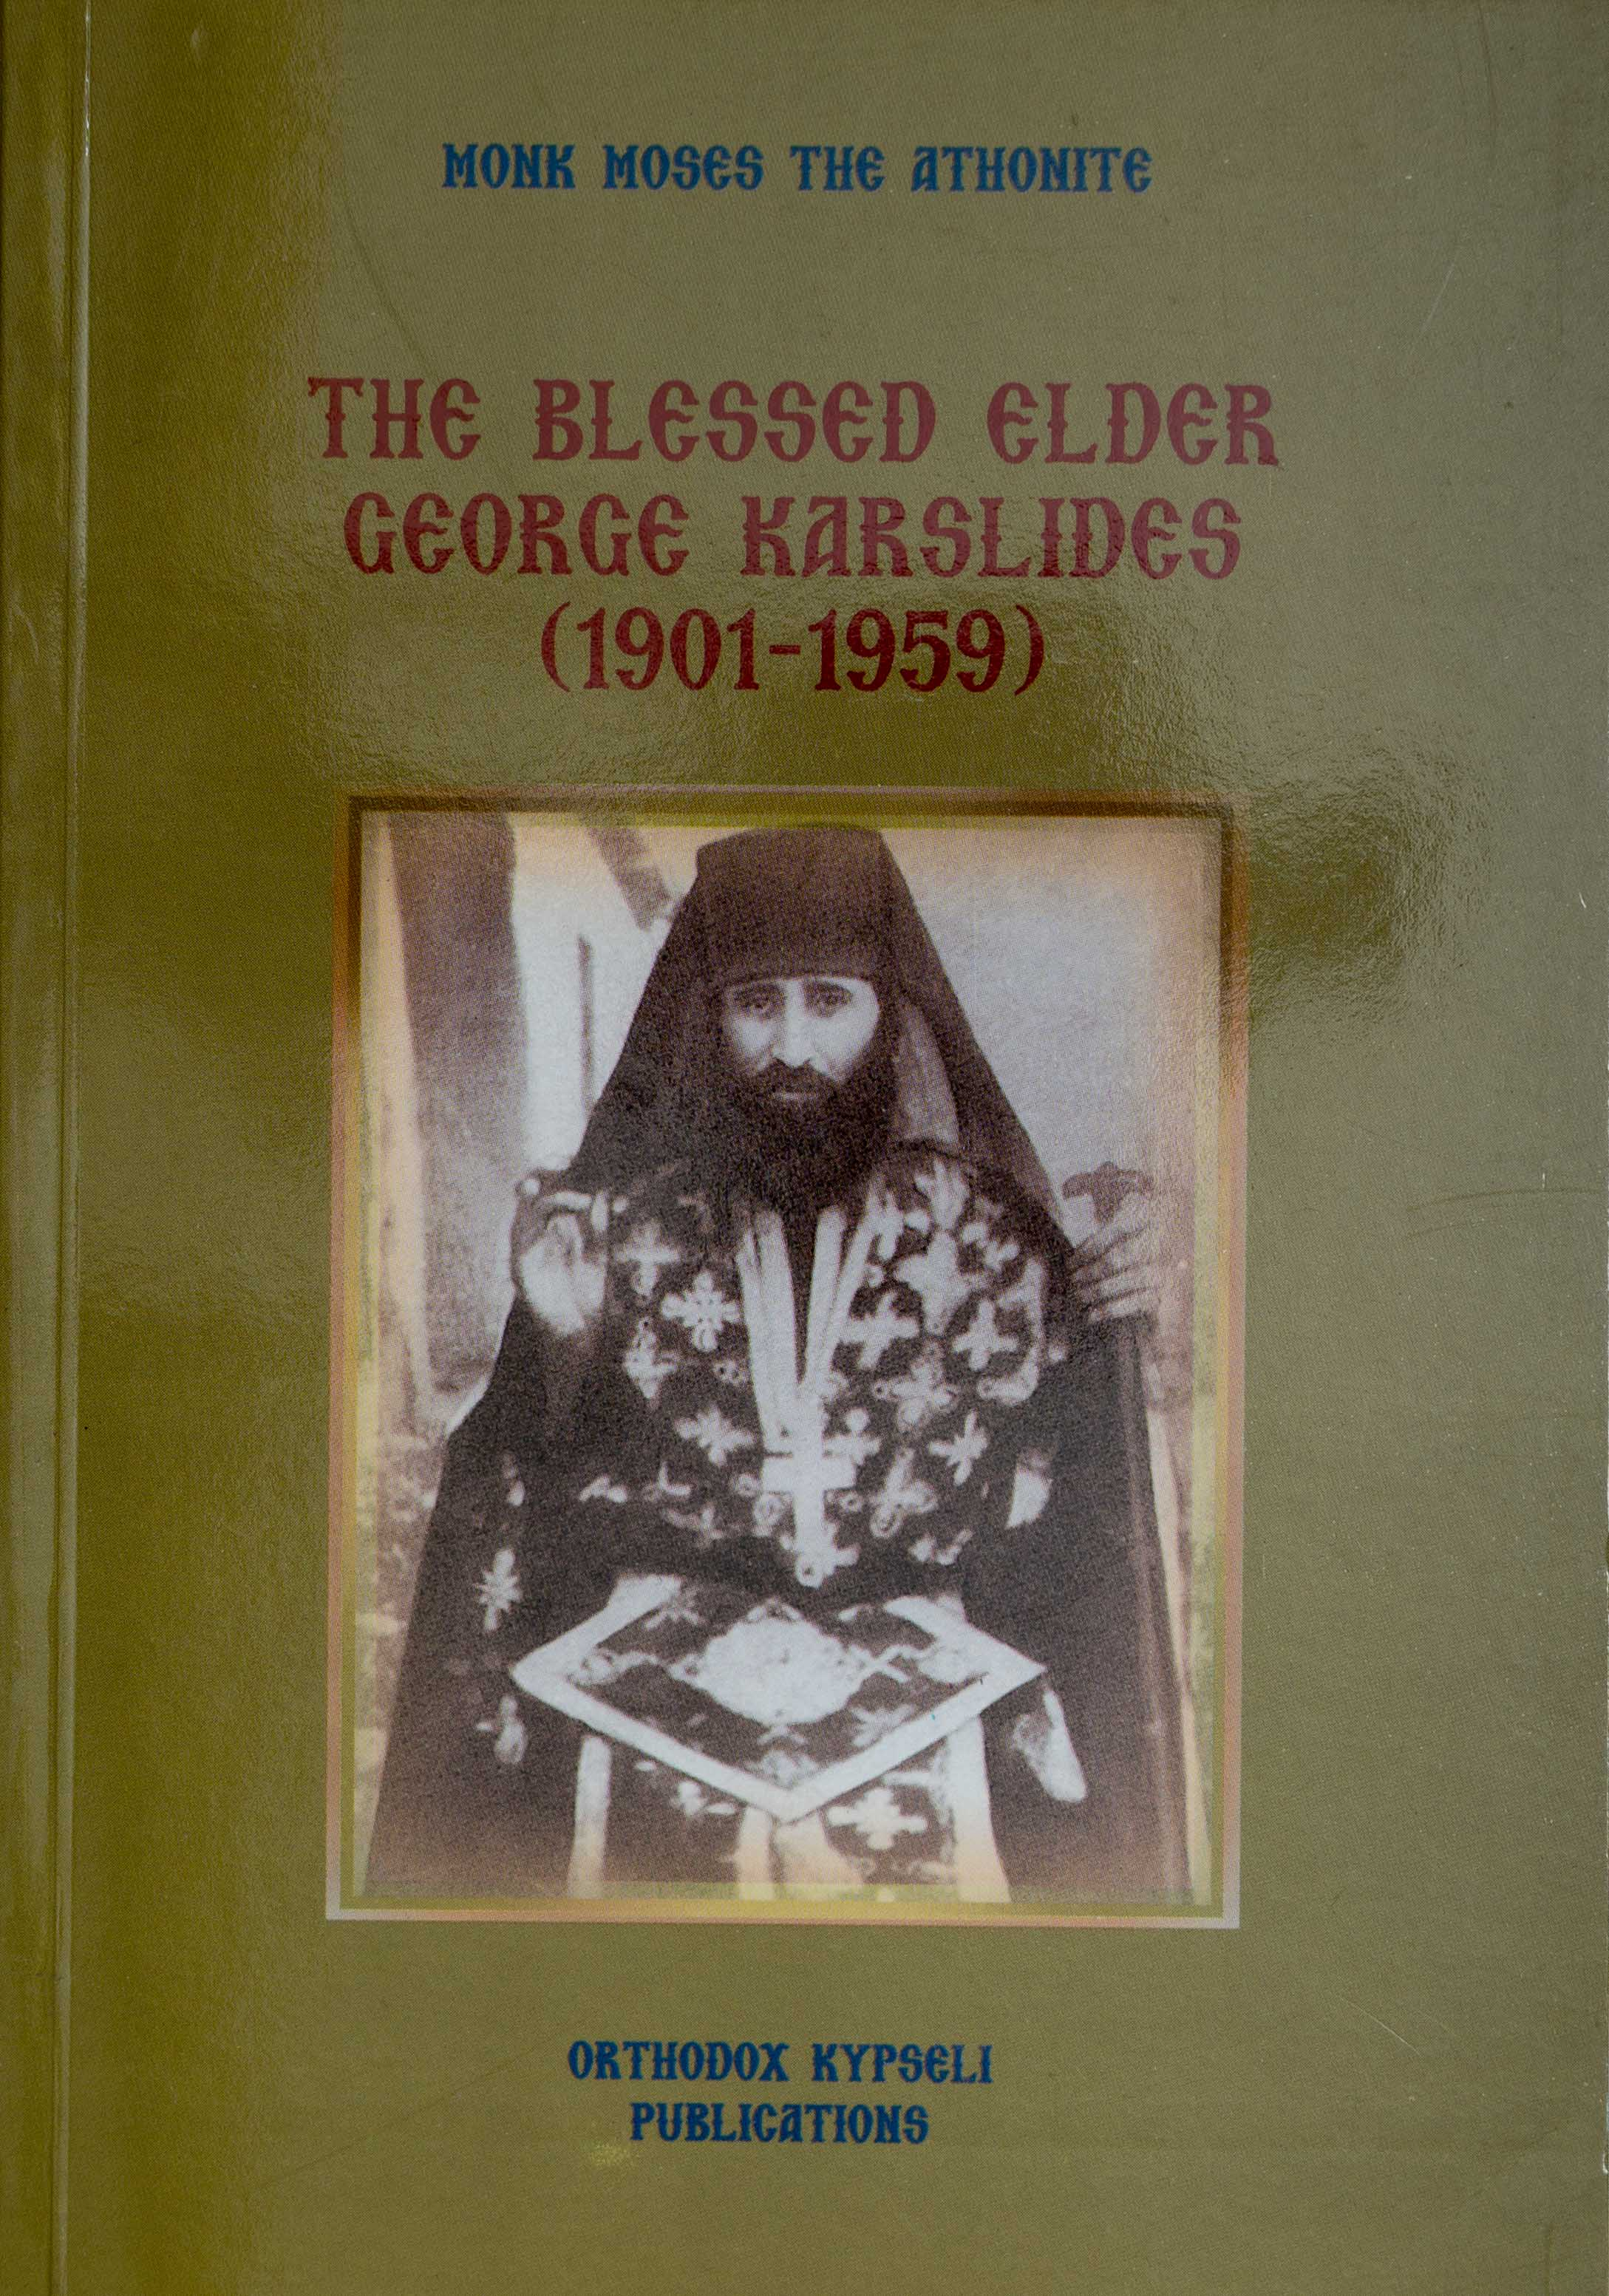 The Blessed Elder George Karslides (1901-1959)